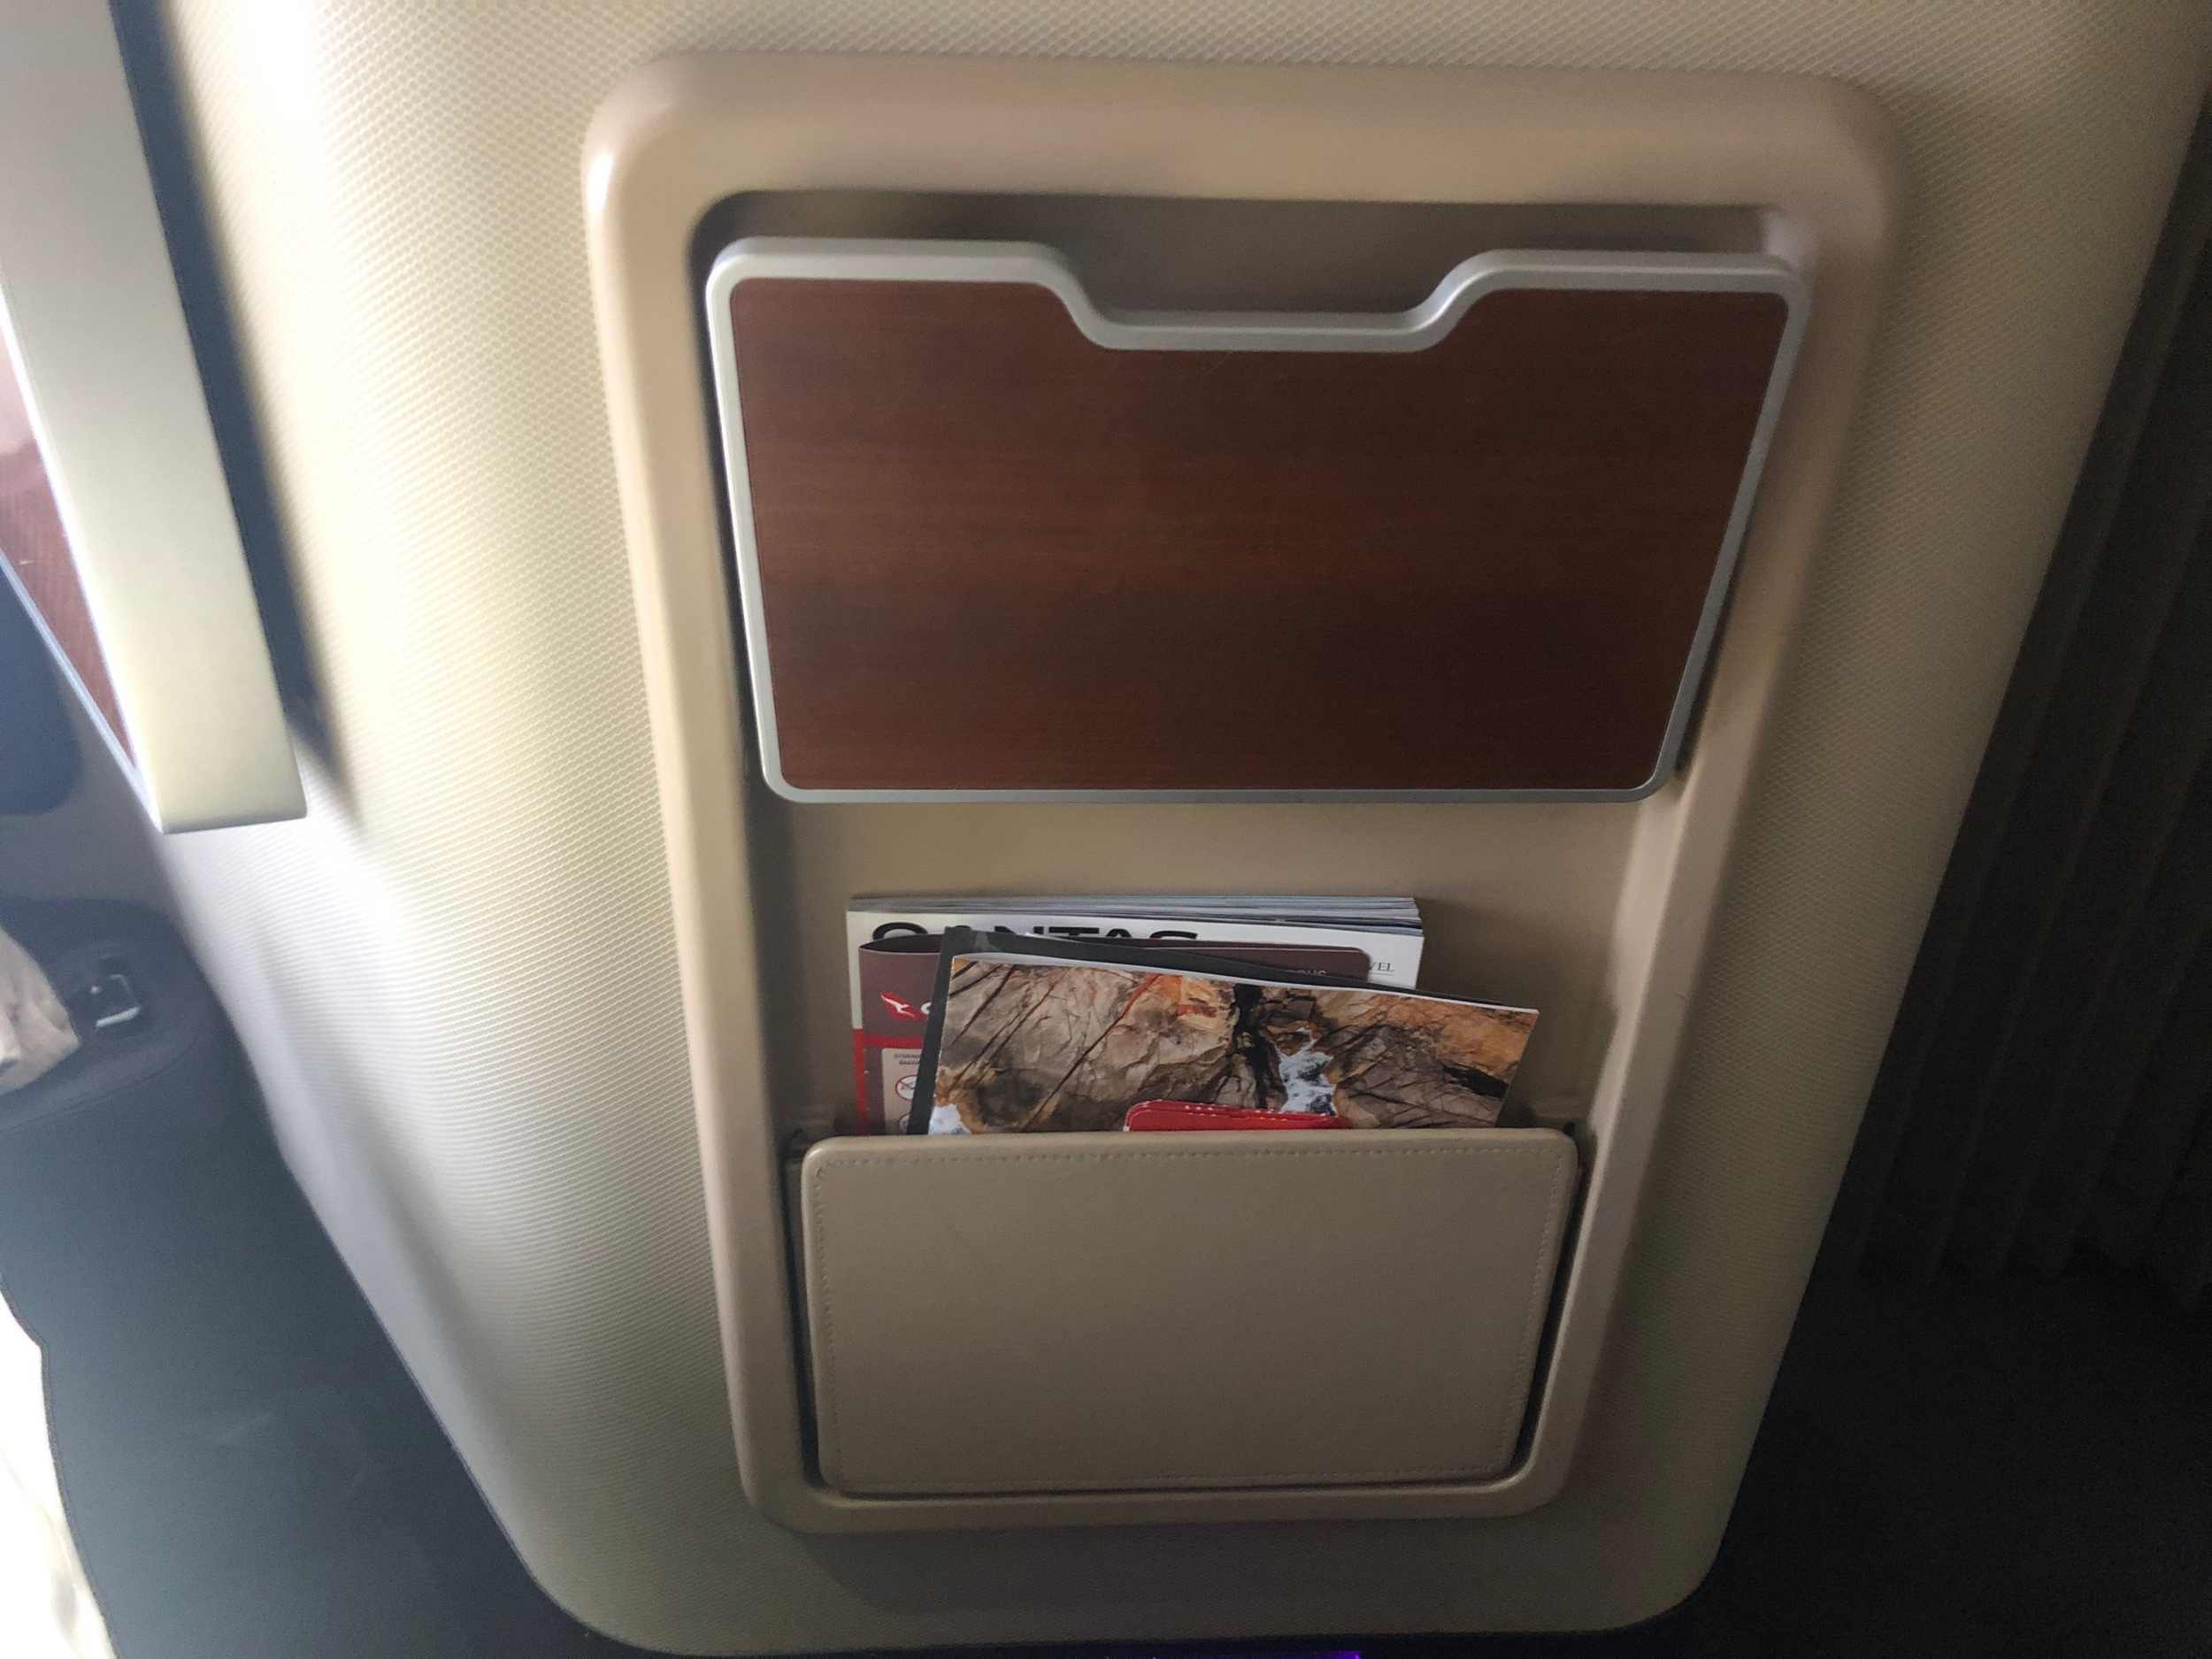 Qantas First Class - Small Table & Literature